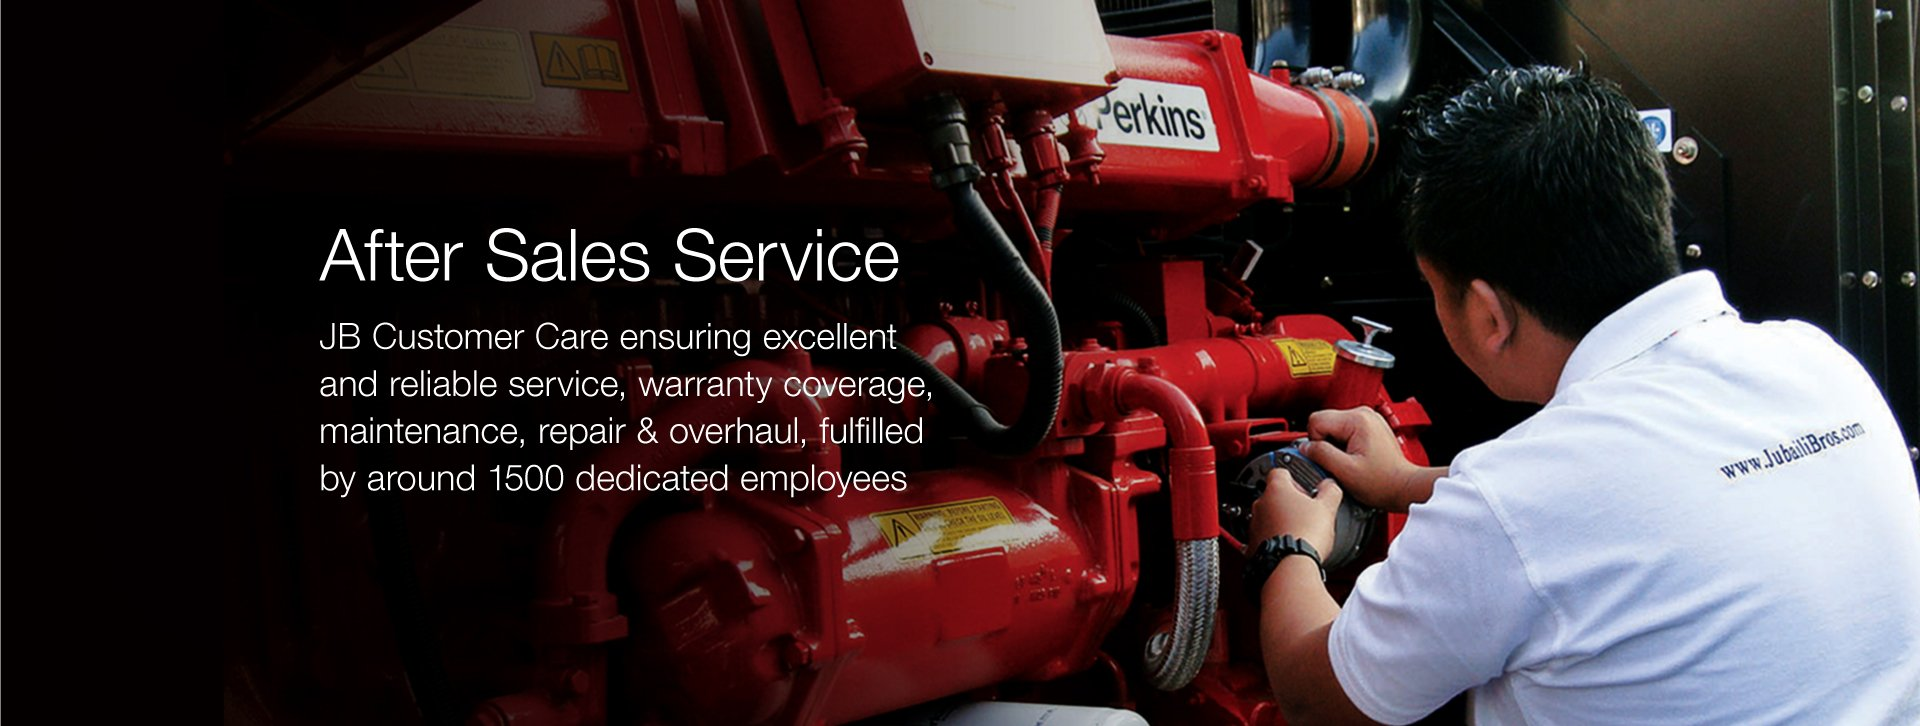 After Sales Service - Generator Companies in UAE